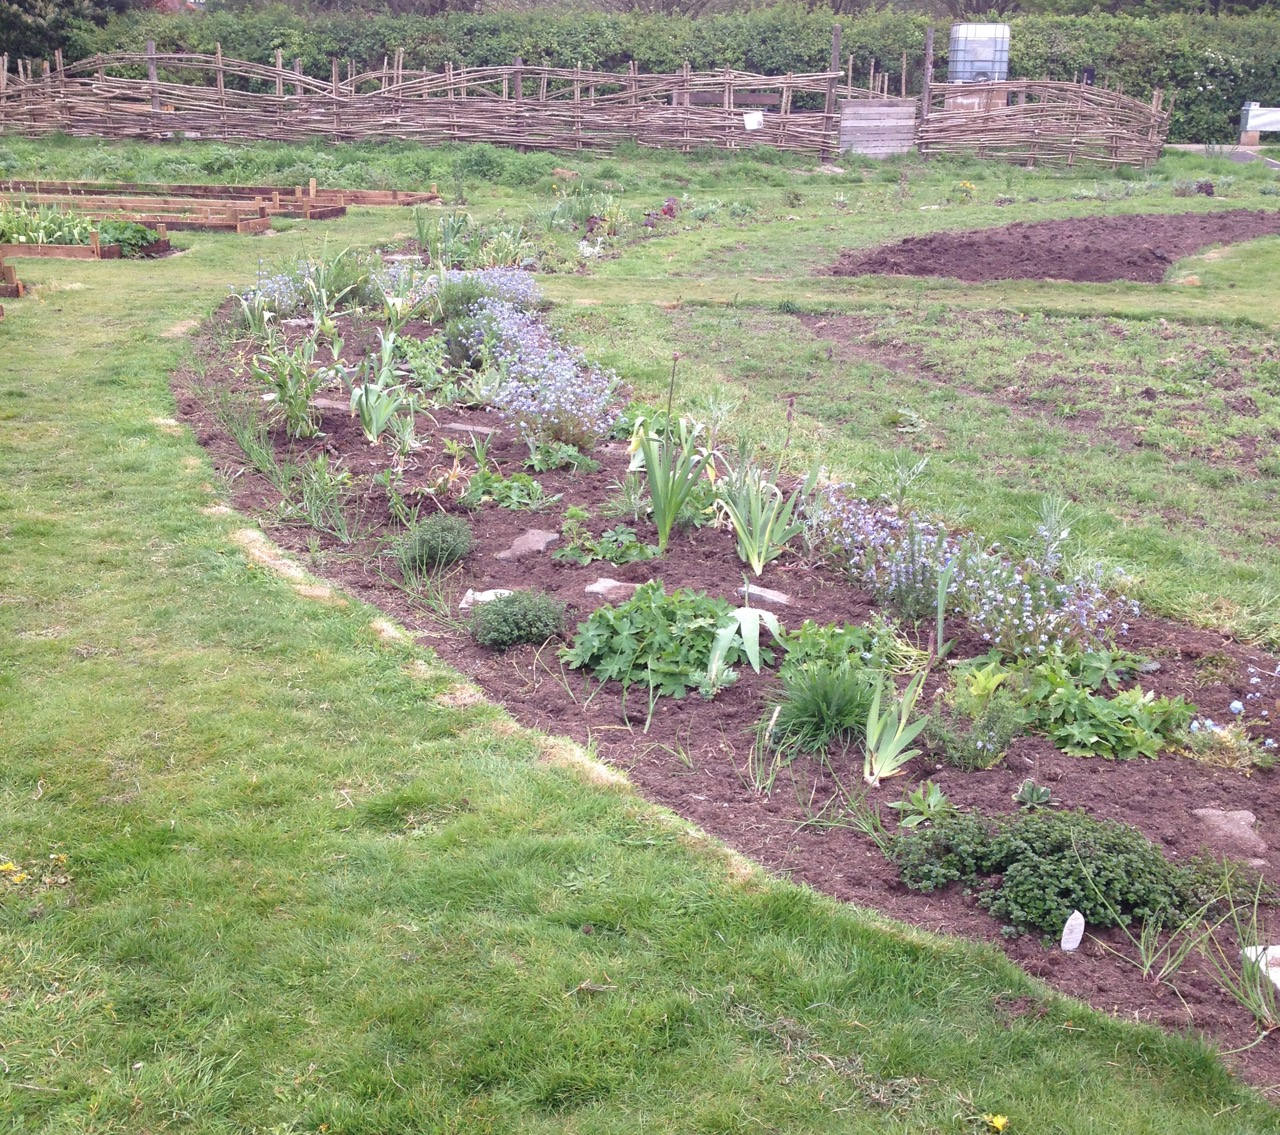 The new perennial beds are doing well but we have a lot of re-growth of annuals seedings, which take a lot of work to clean.